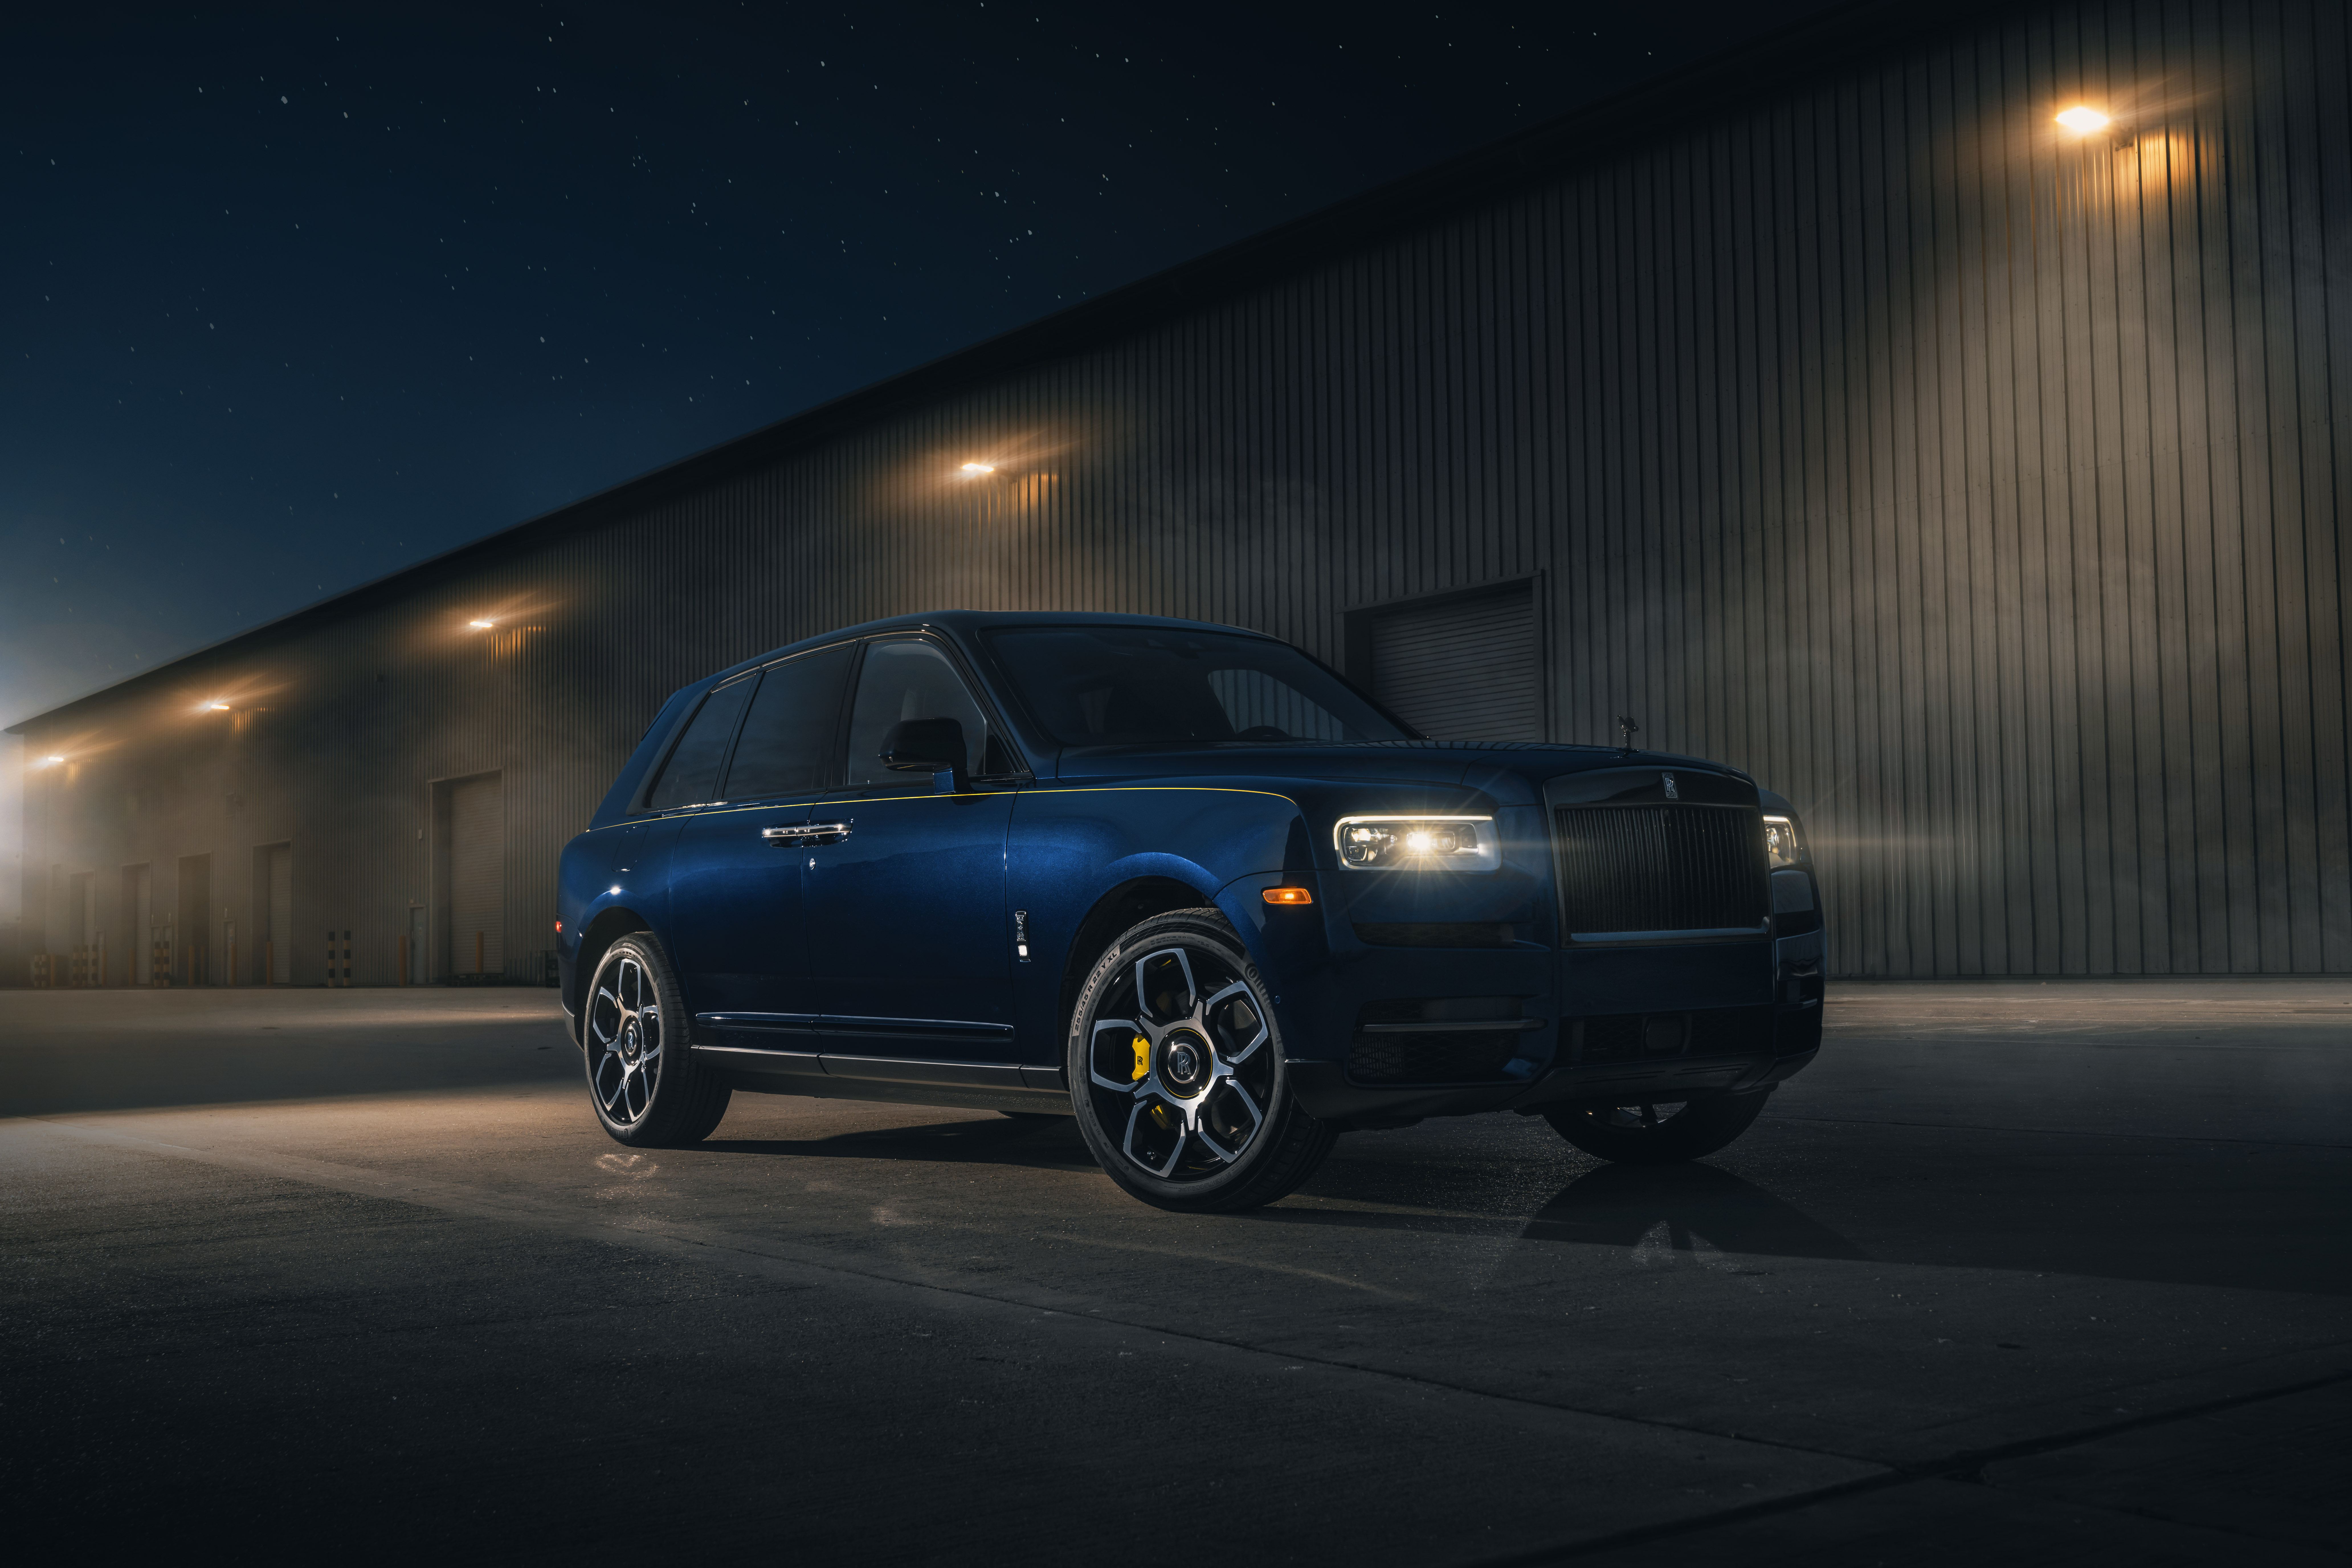 rolls royce cullinan black badge for ben and christine sloss 4k 1620167814 - Rolls Royce Cullinan Black Badge For Ben And Christine Sloss 4k - Rolls Royce Cullinan Black Badge For Ben And Christine Sloss 4k wallpapers